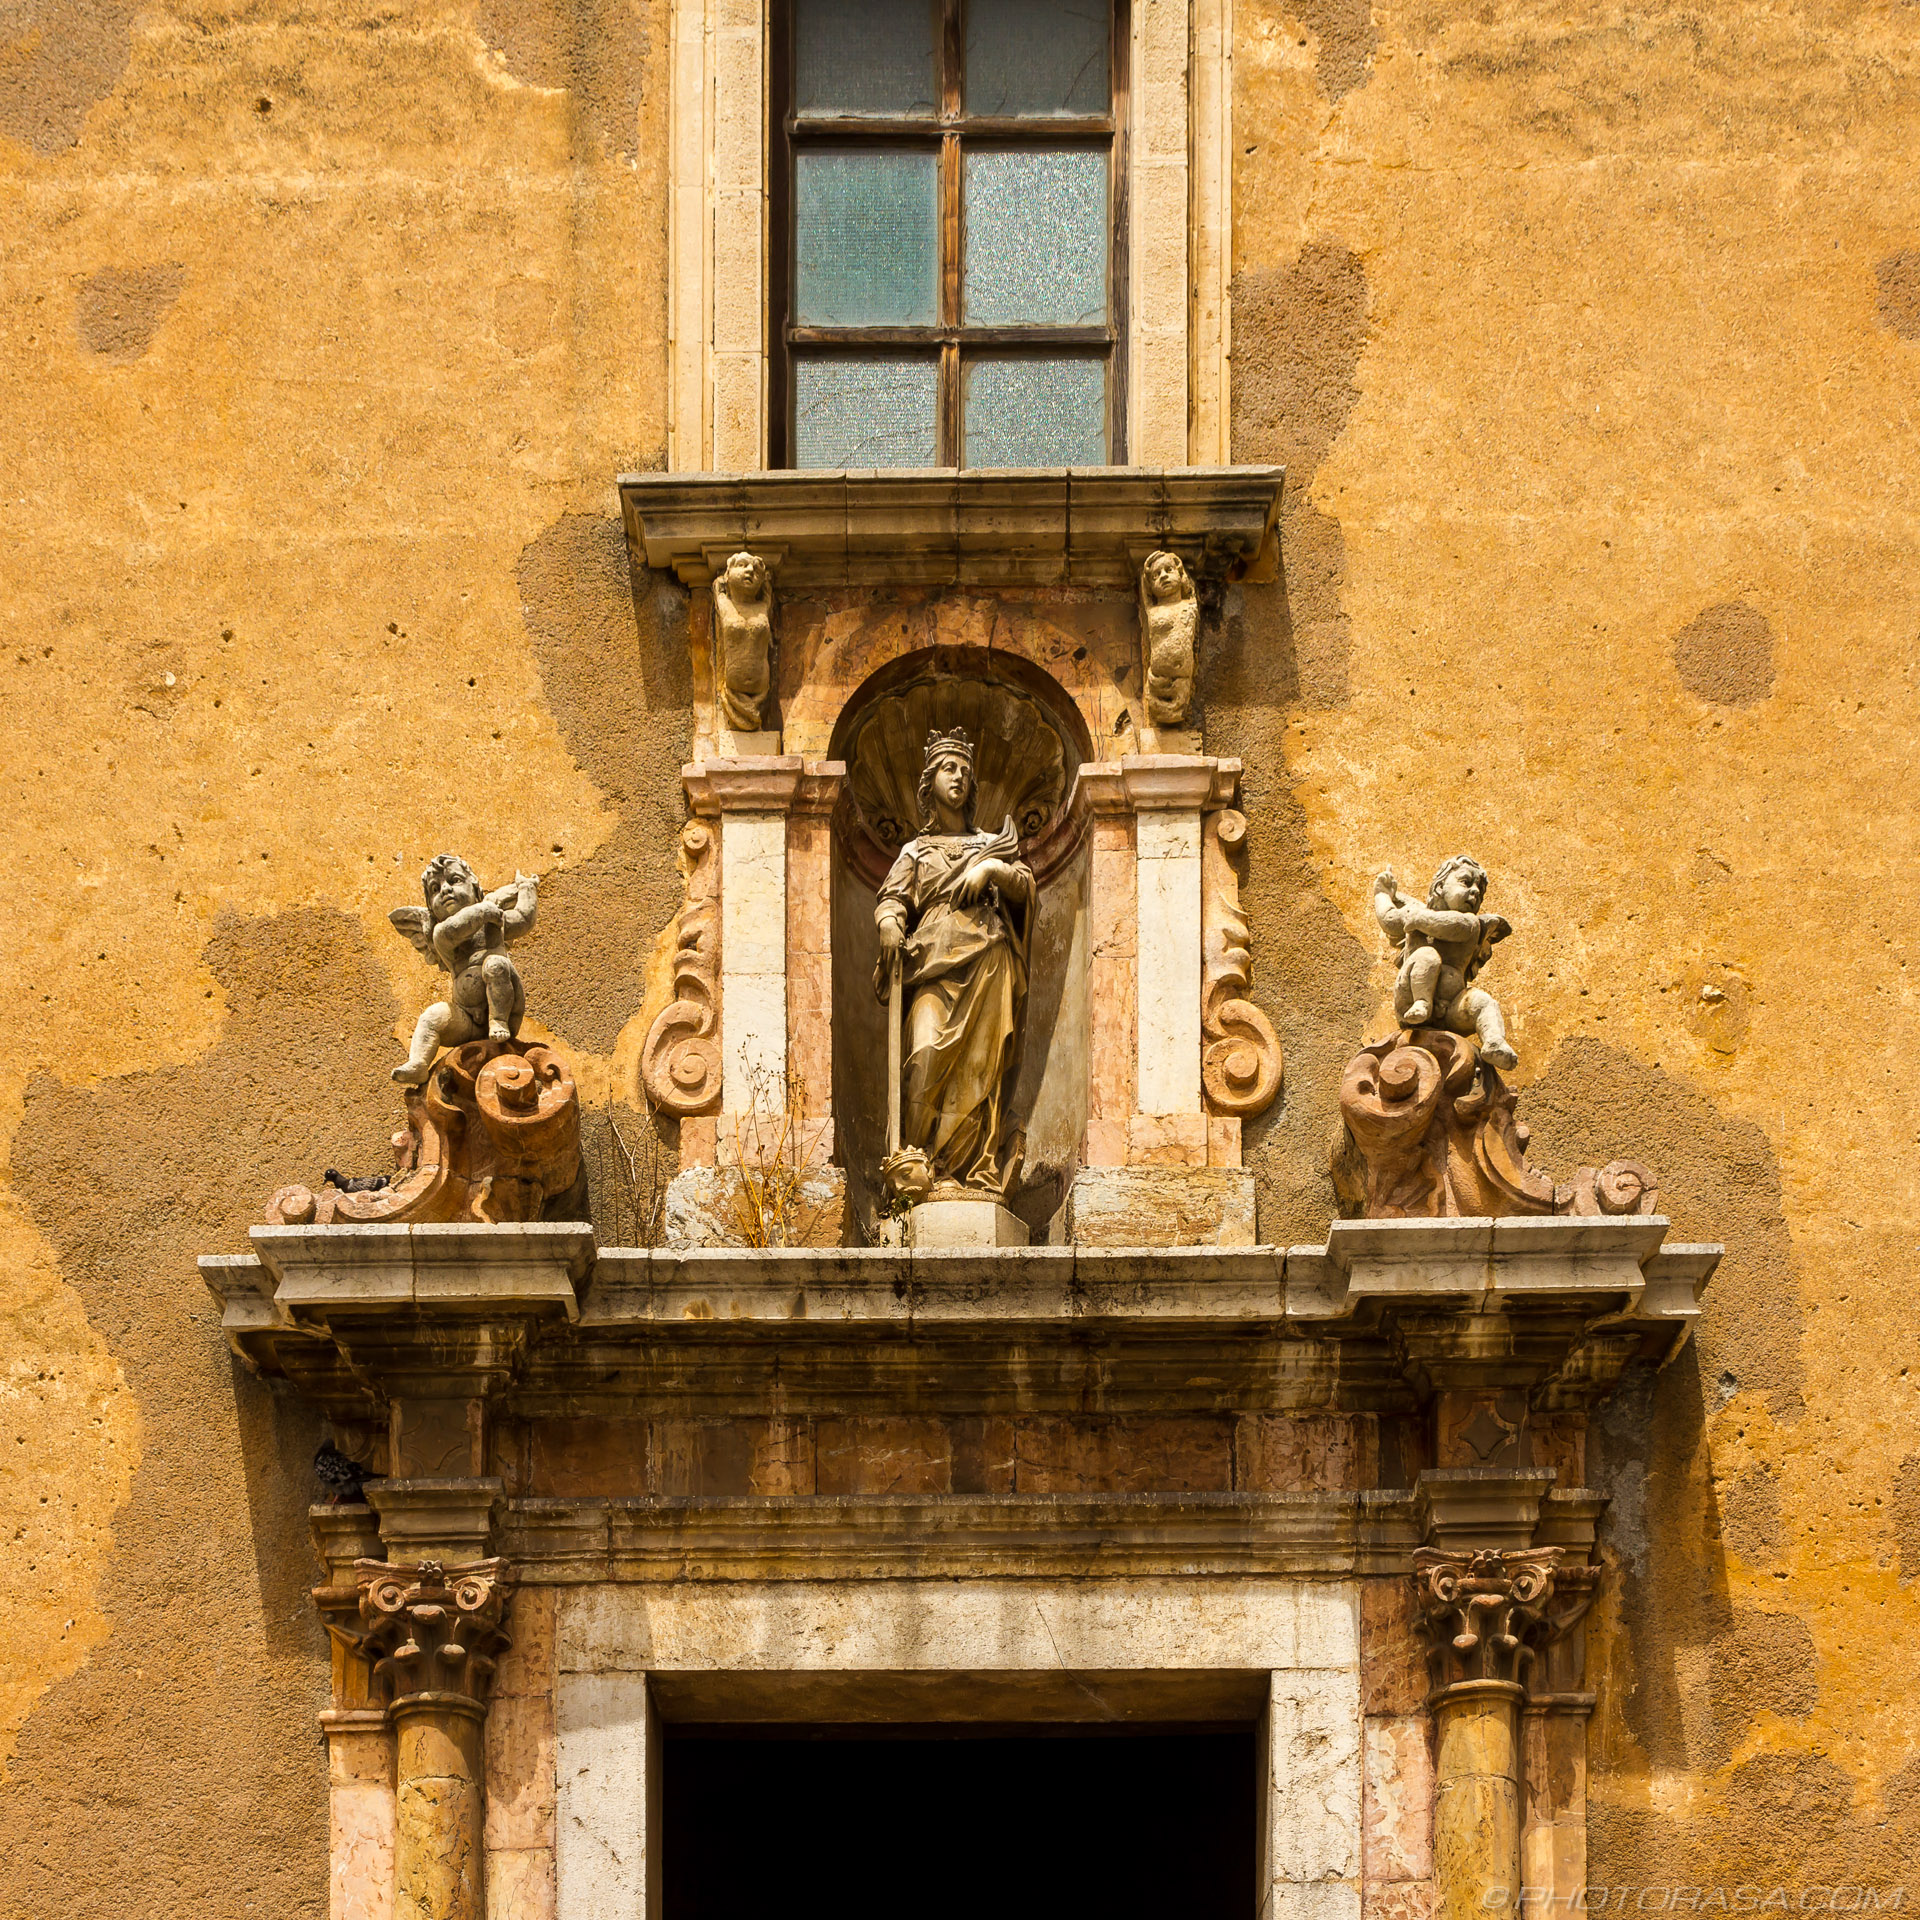 https://photorasa.com/taormina/statues-above-building-entrance/